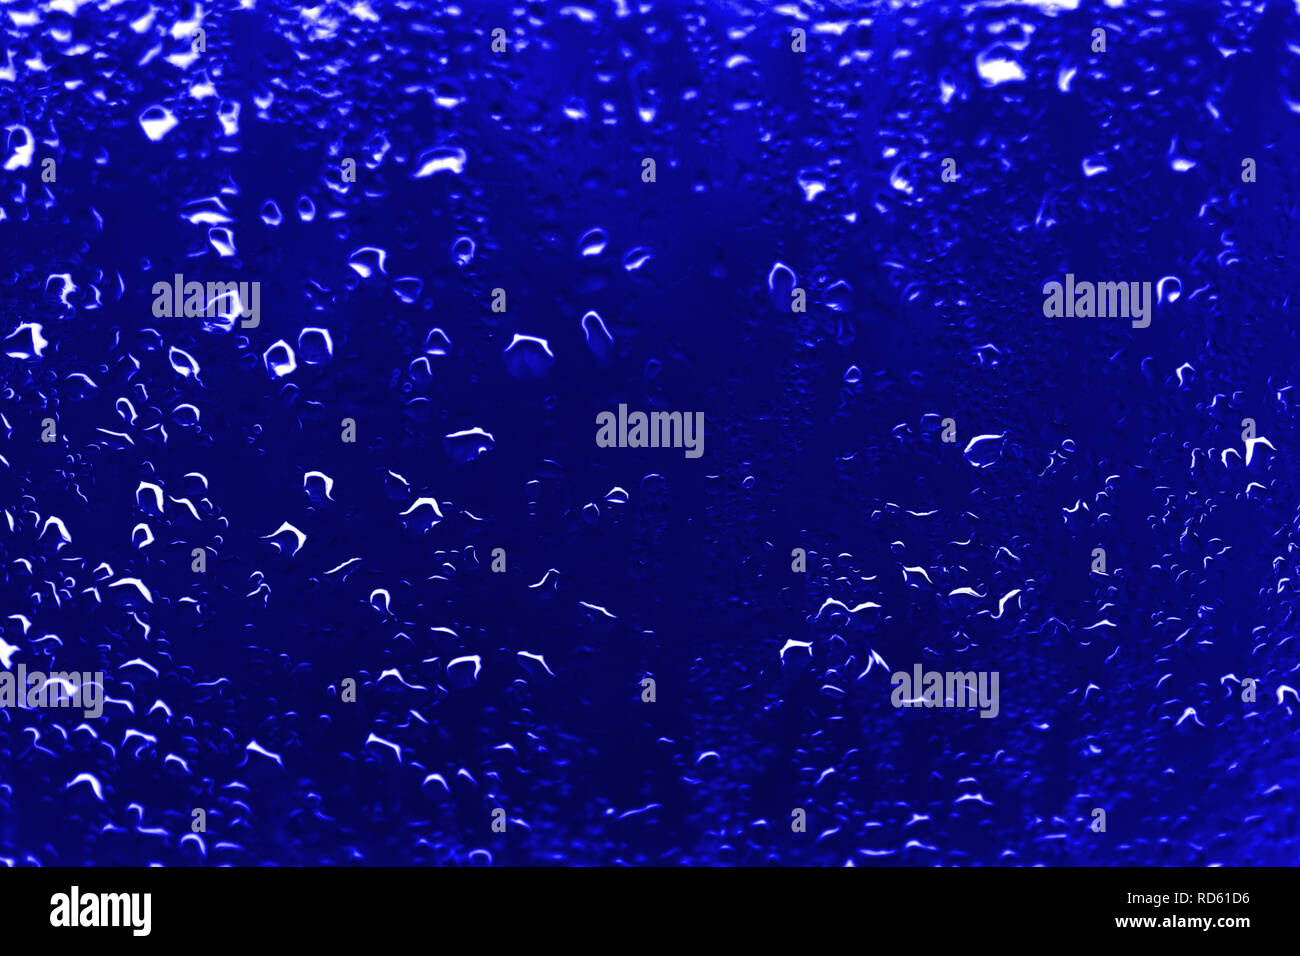 High contrast photo of drops of rain on a window glass with vivid navy blue color Stock Photo